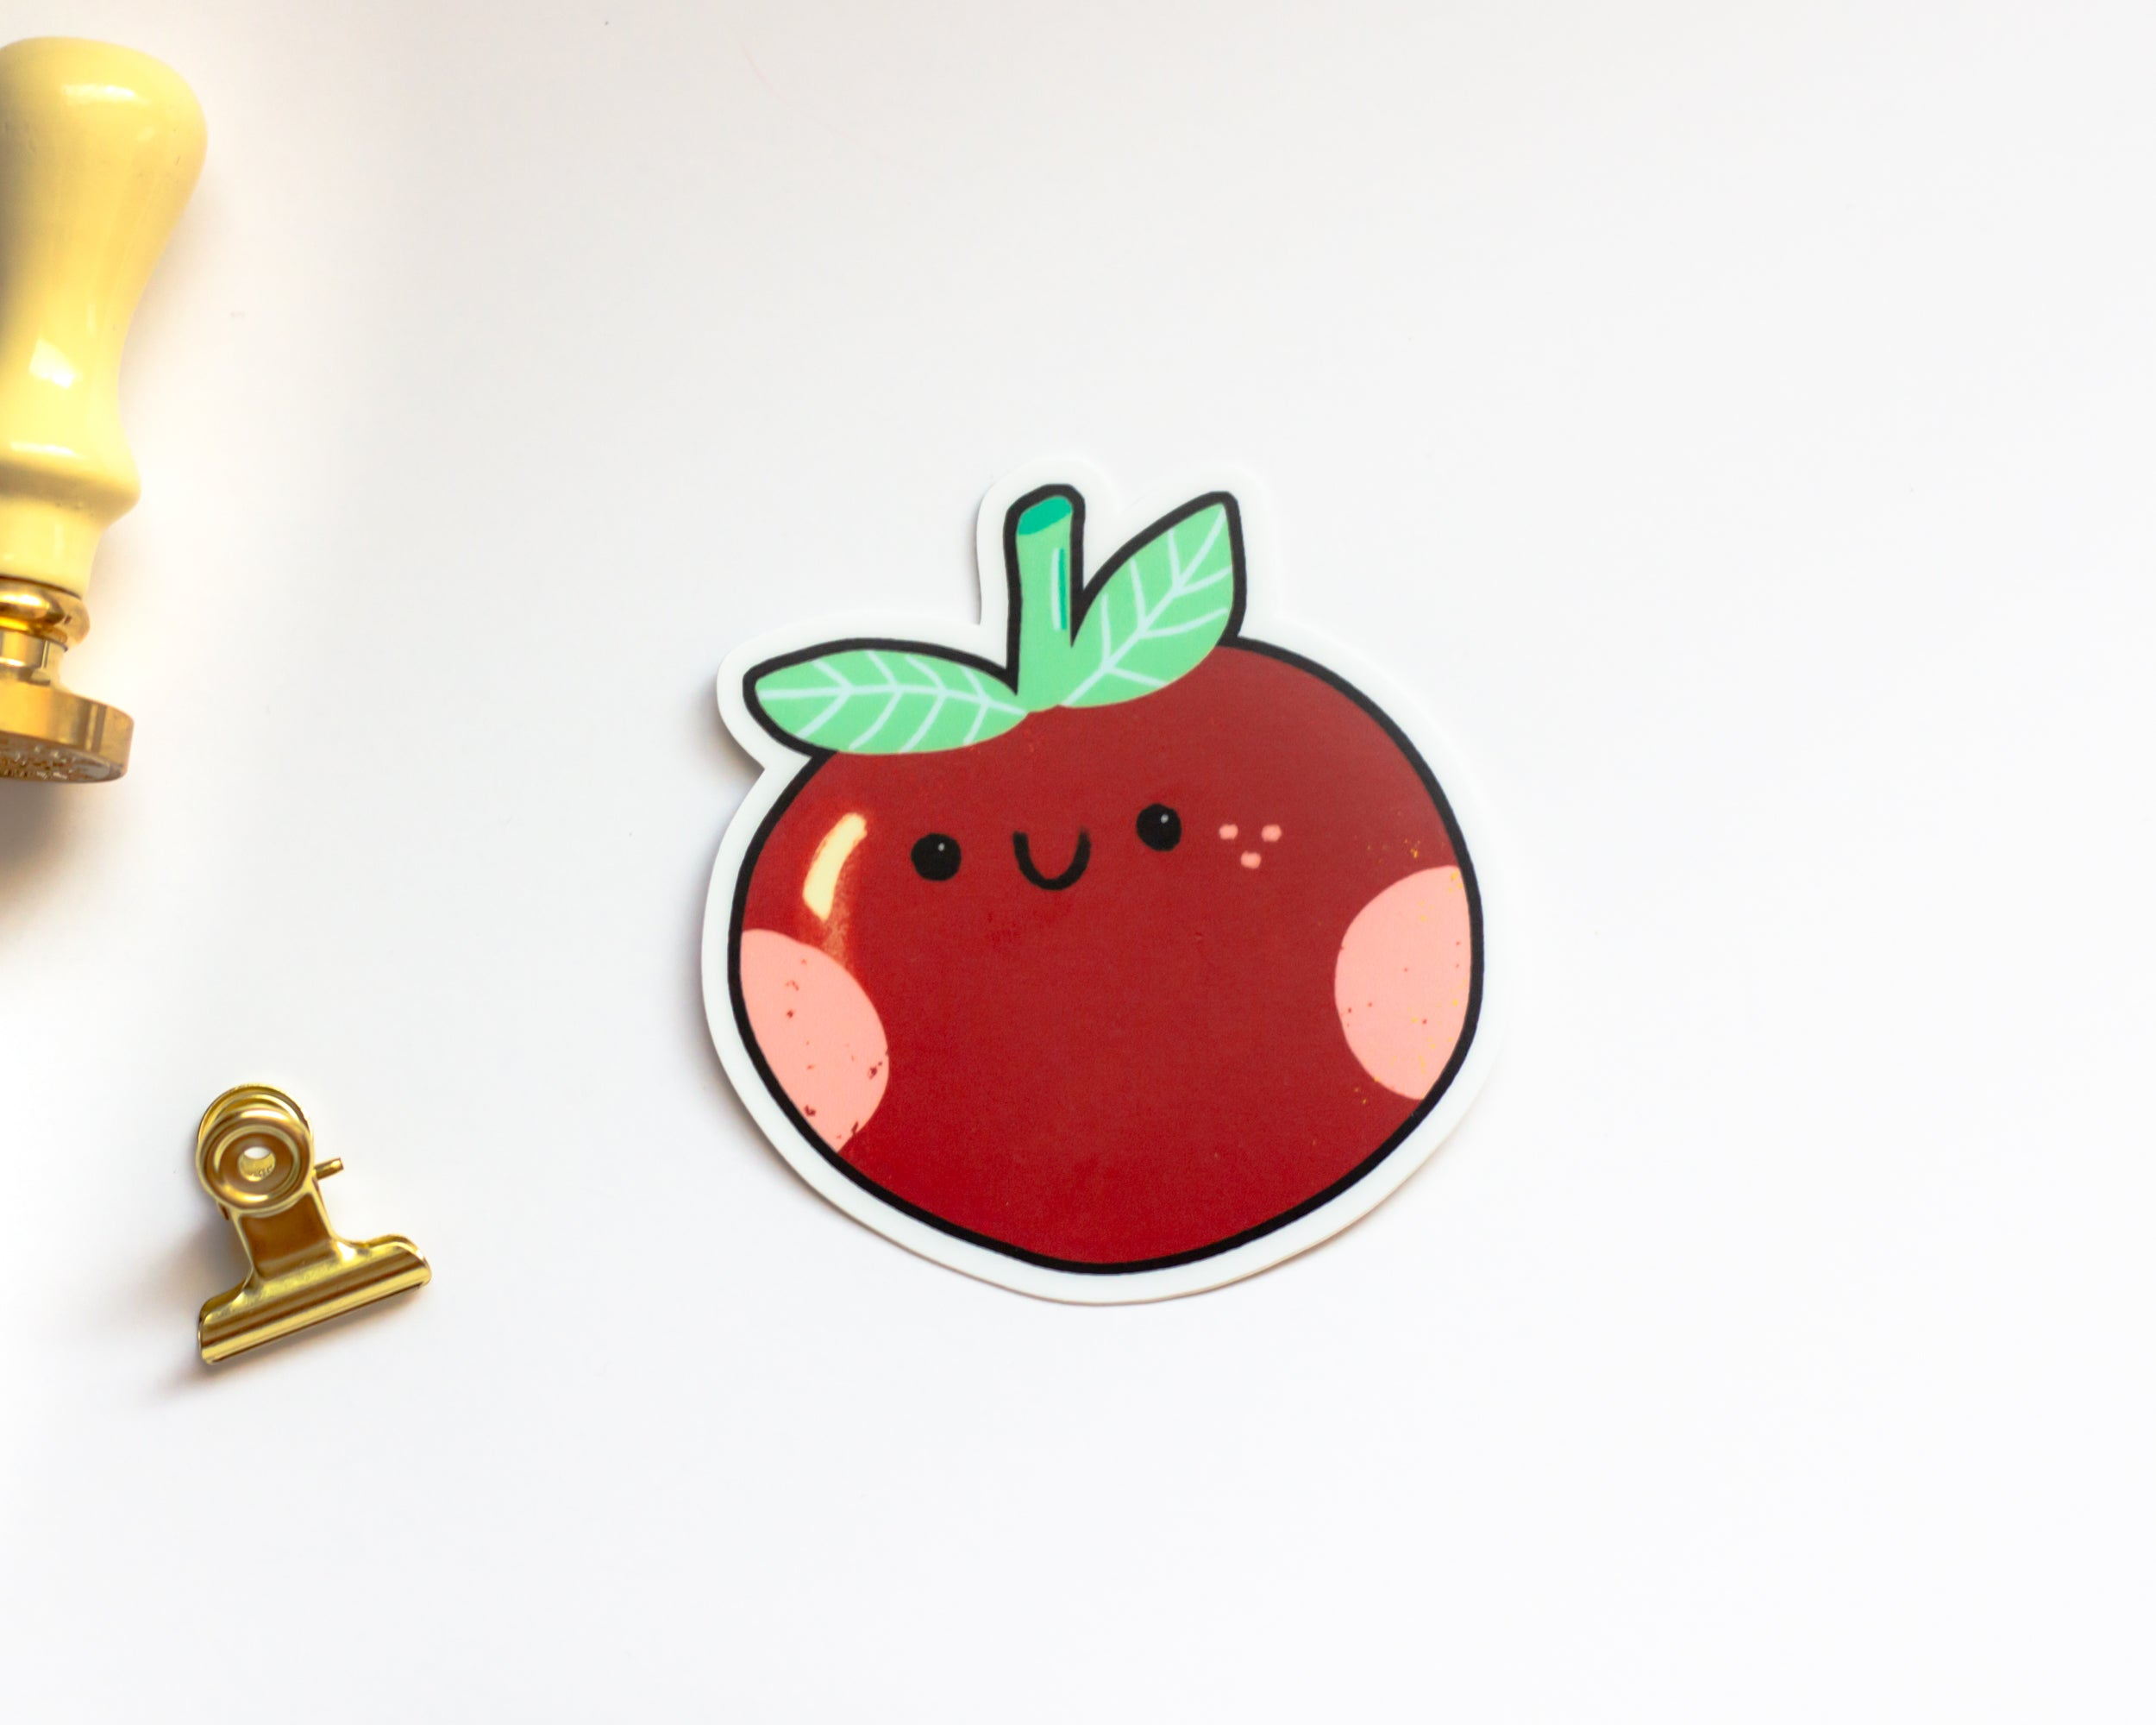 Red Apple Transparent Sticker - Cottagecore Aesthetic Sticker - Waterproof Sticker